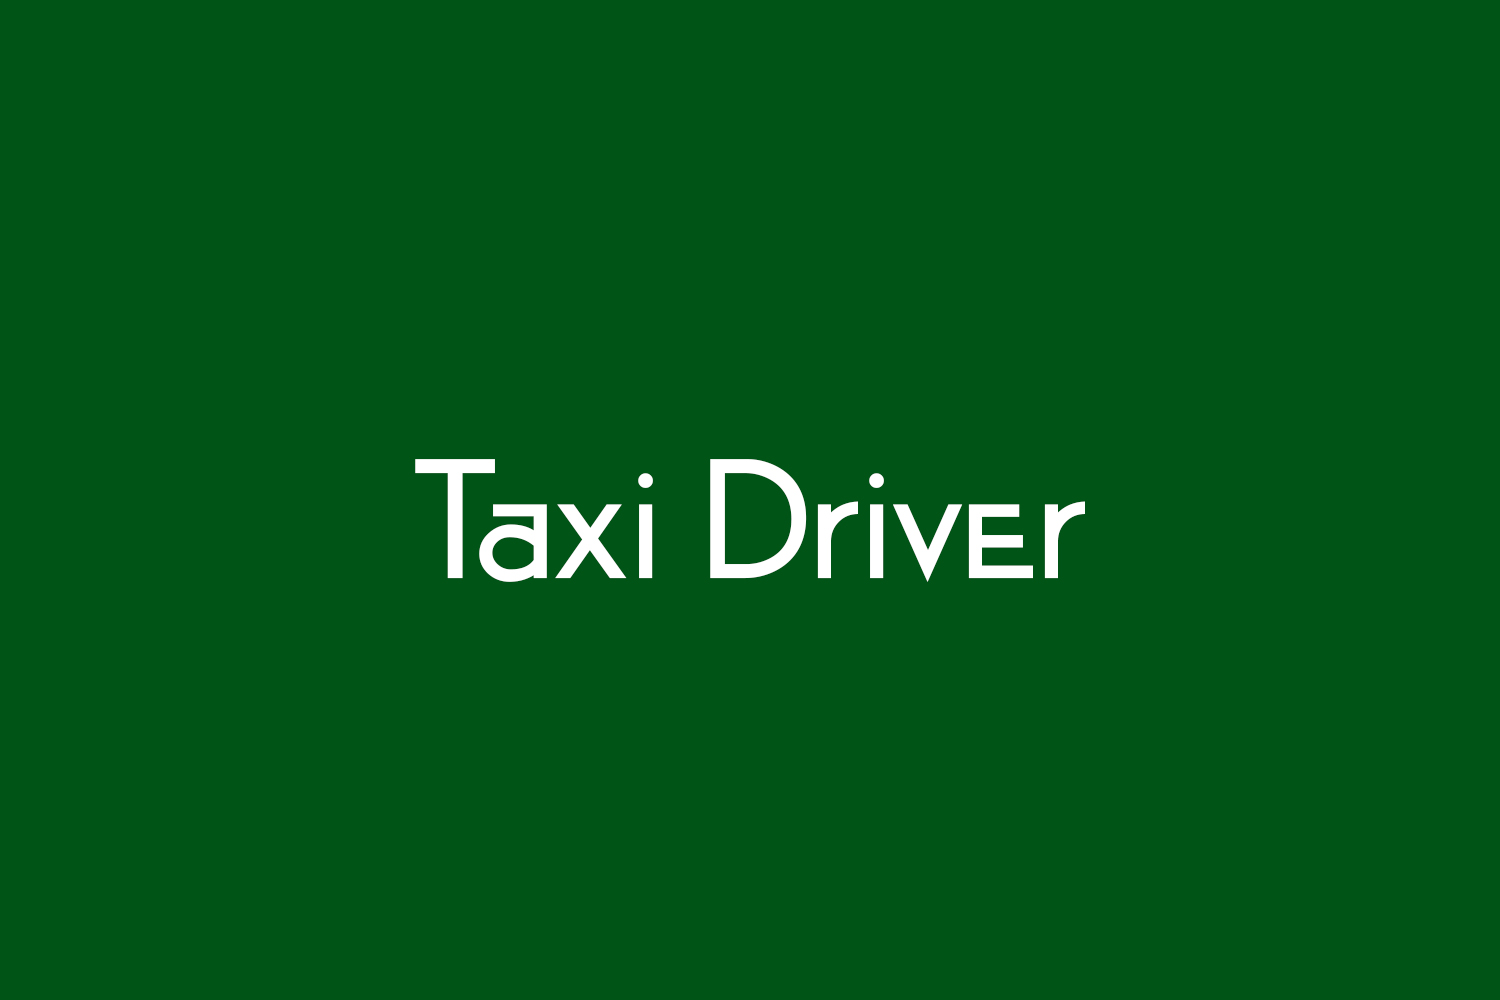 Taxi Driver Free Font